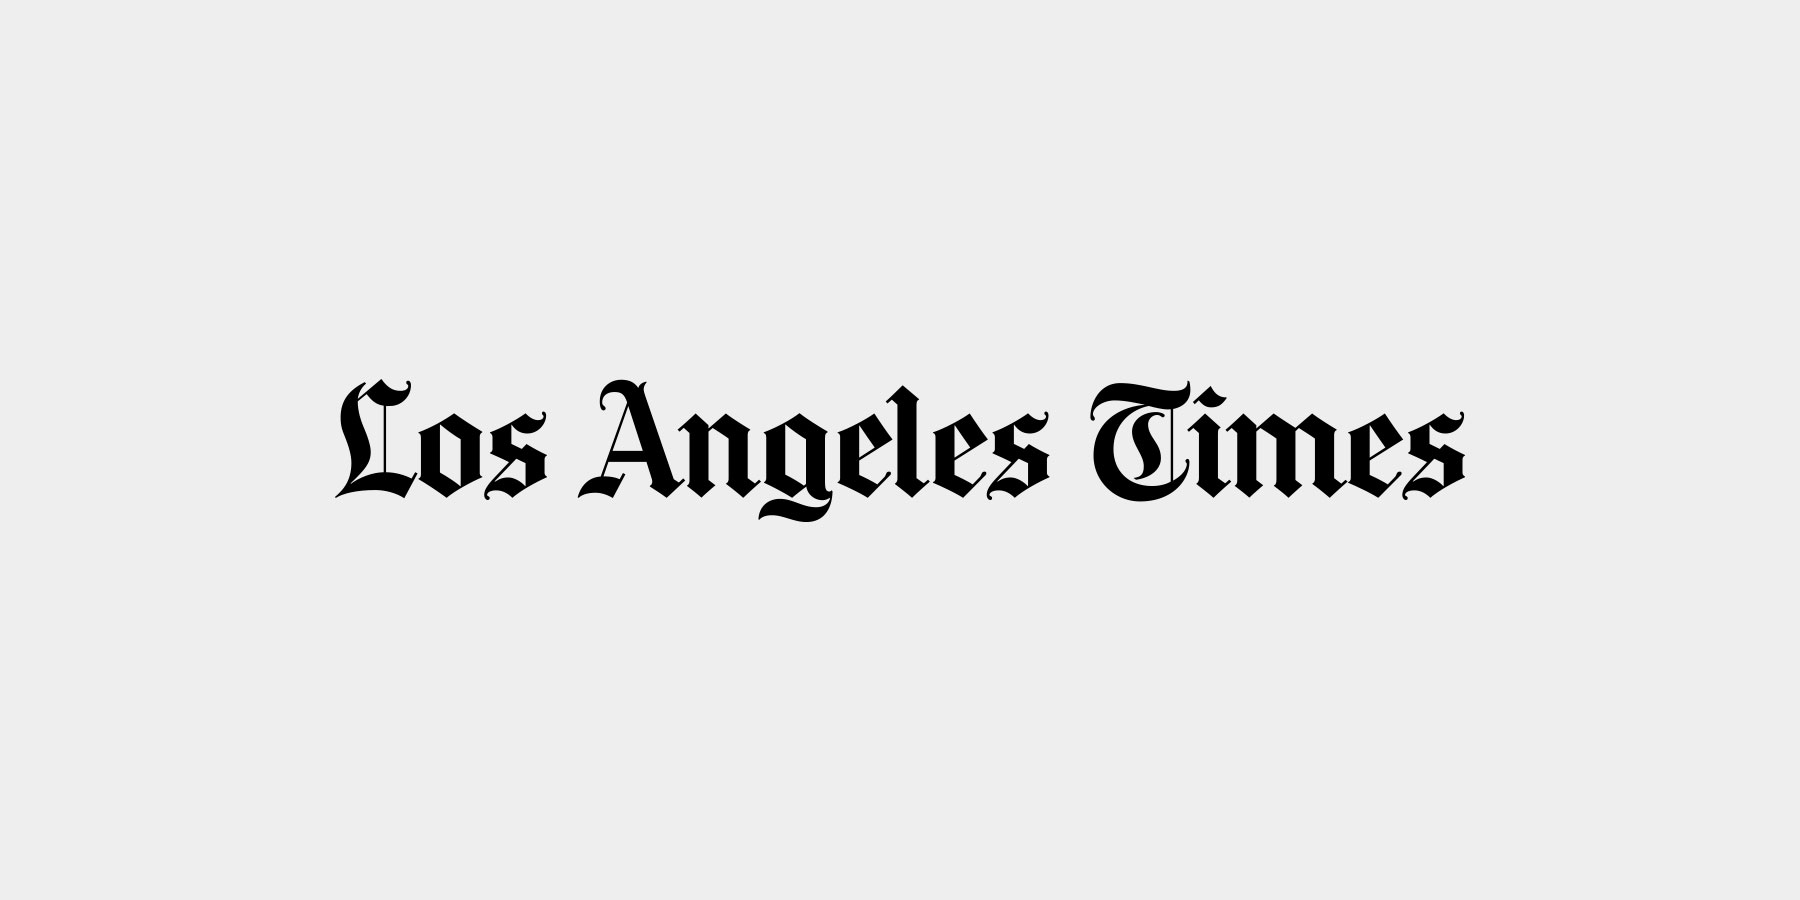 Title Los Angeles Times